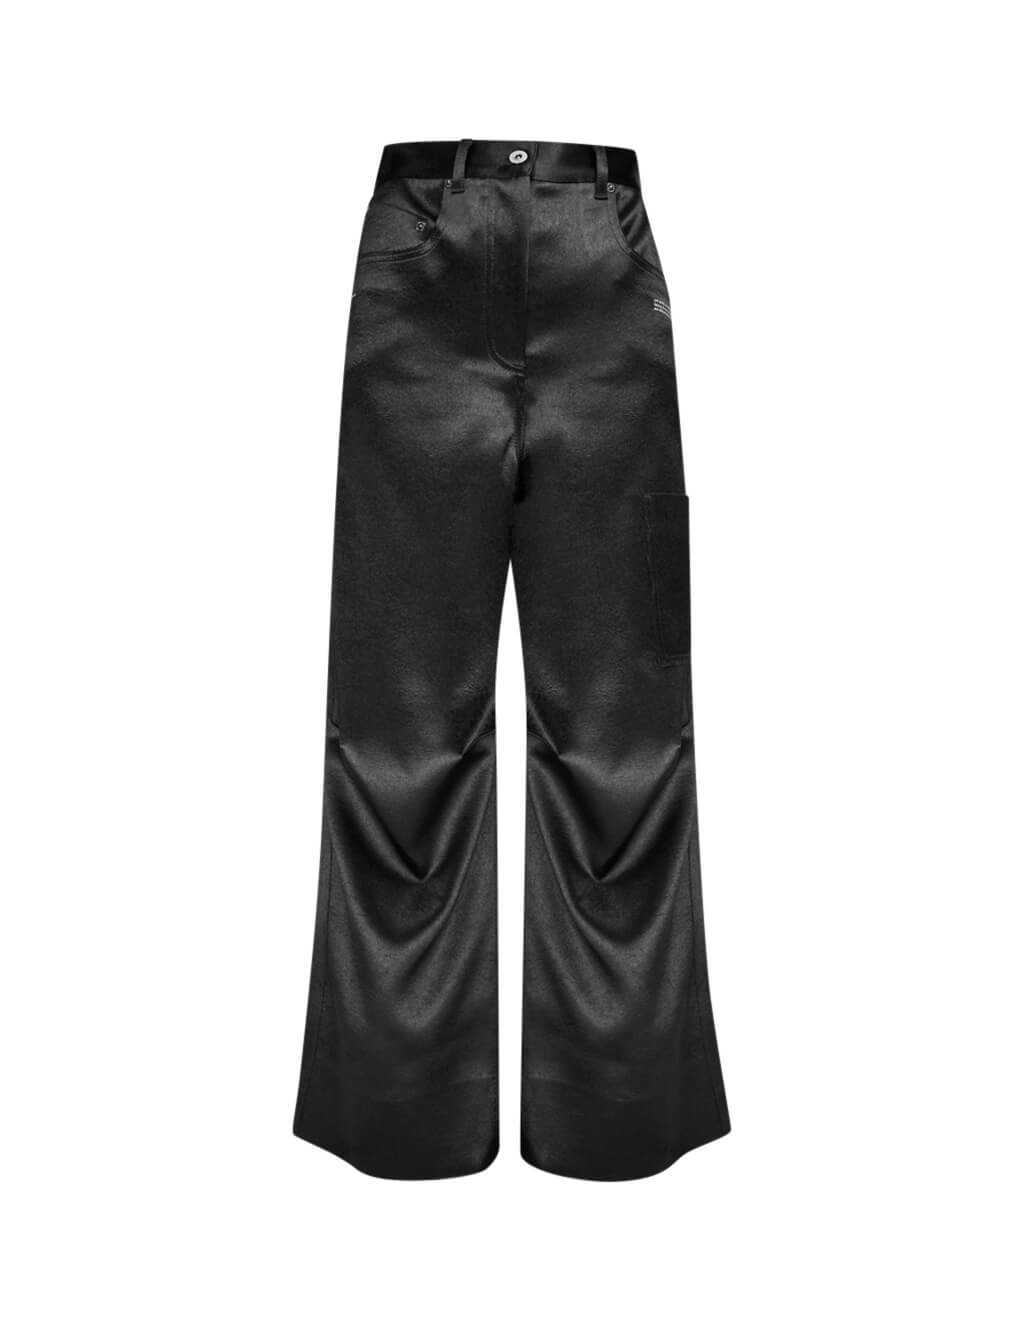 Off-White Women's Giulio Fashion Black Duchesse Tomboy Trousers OWCA095F19F830501000